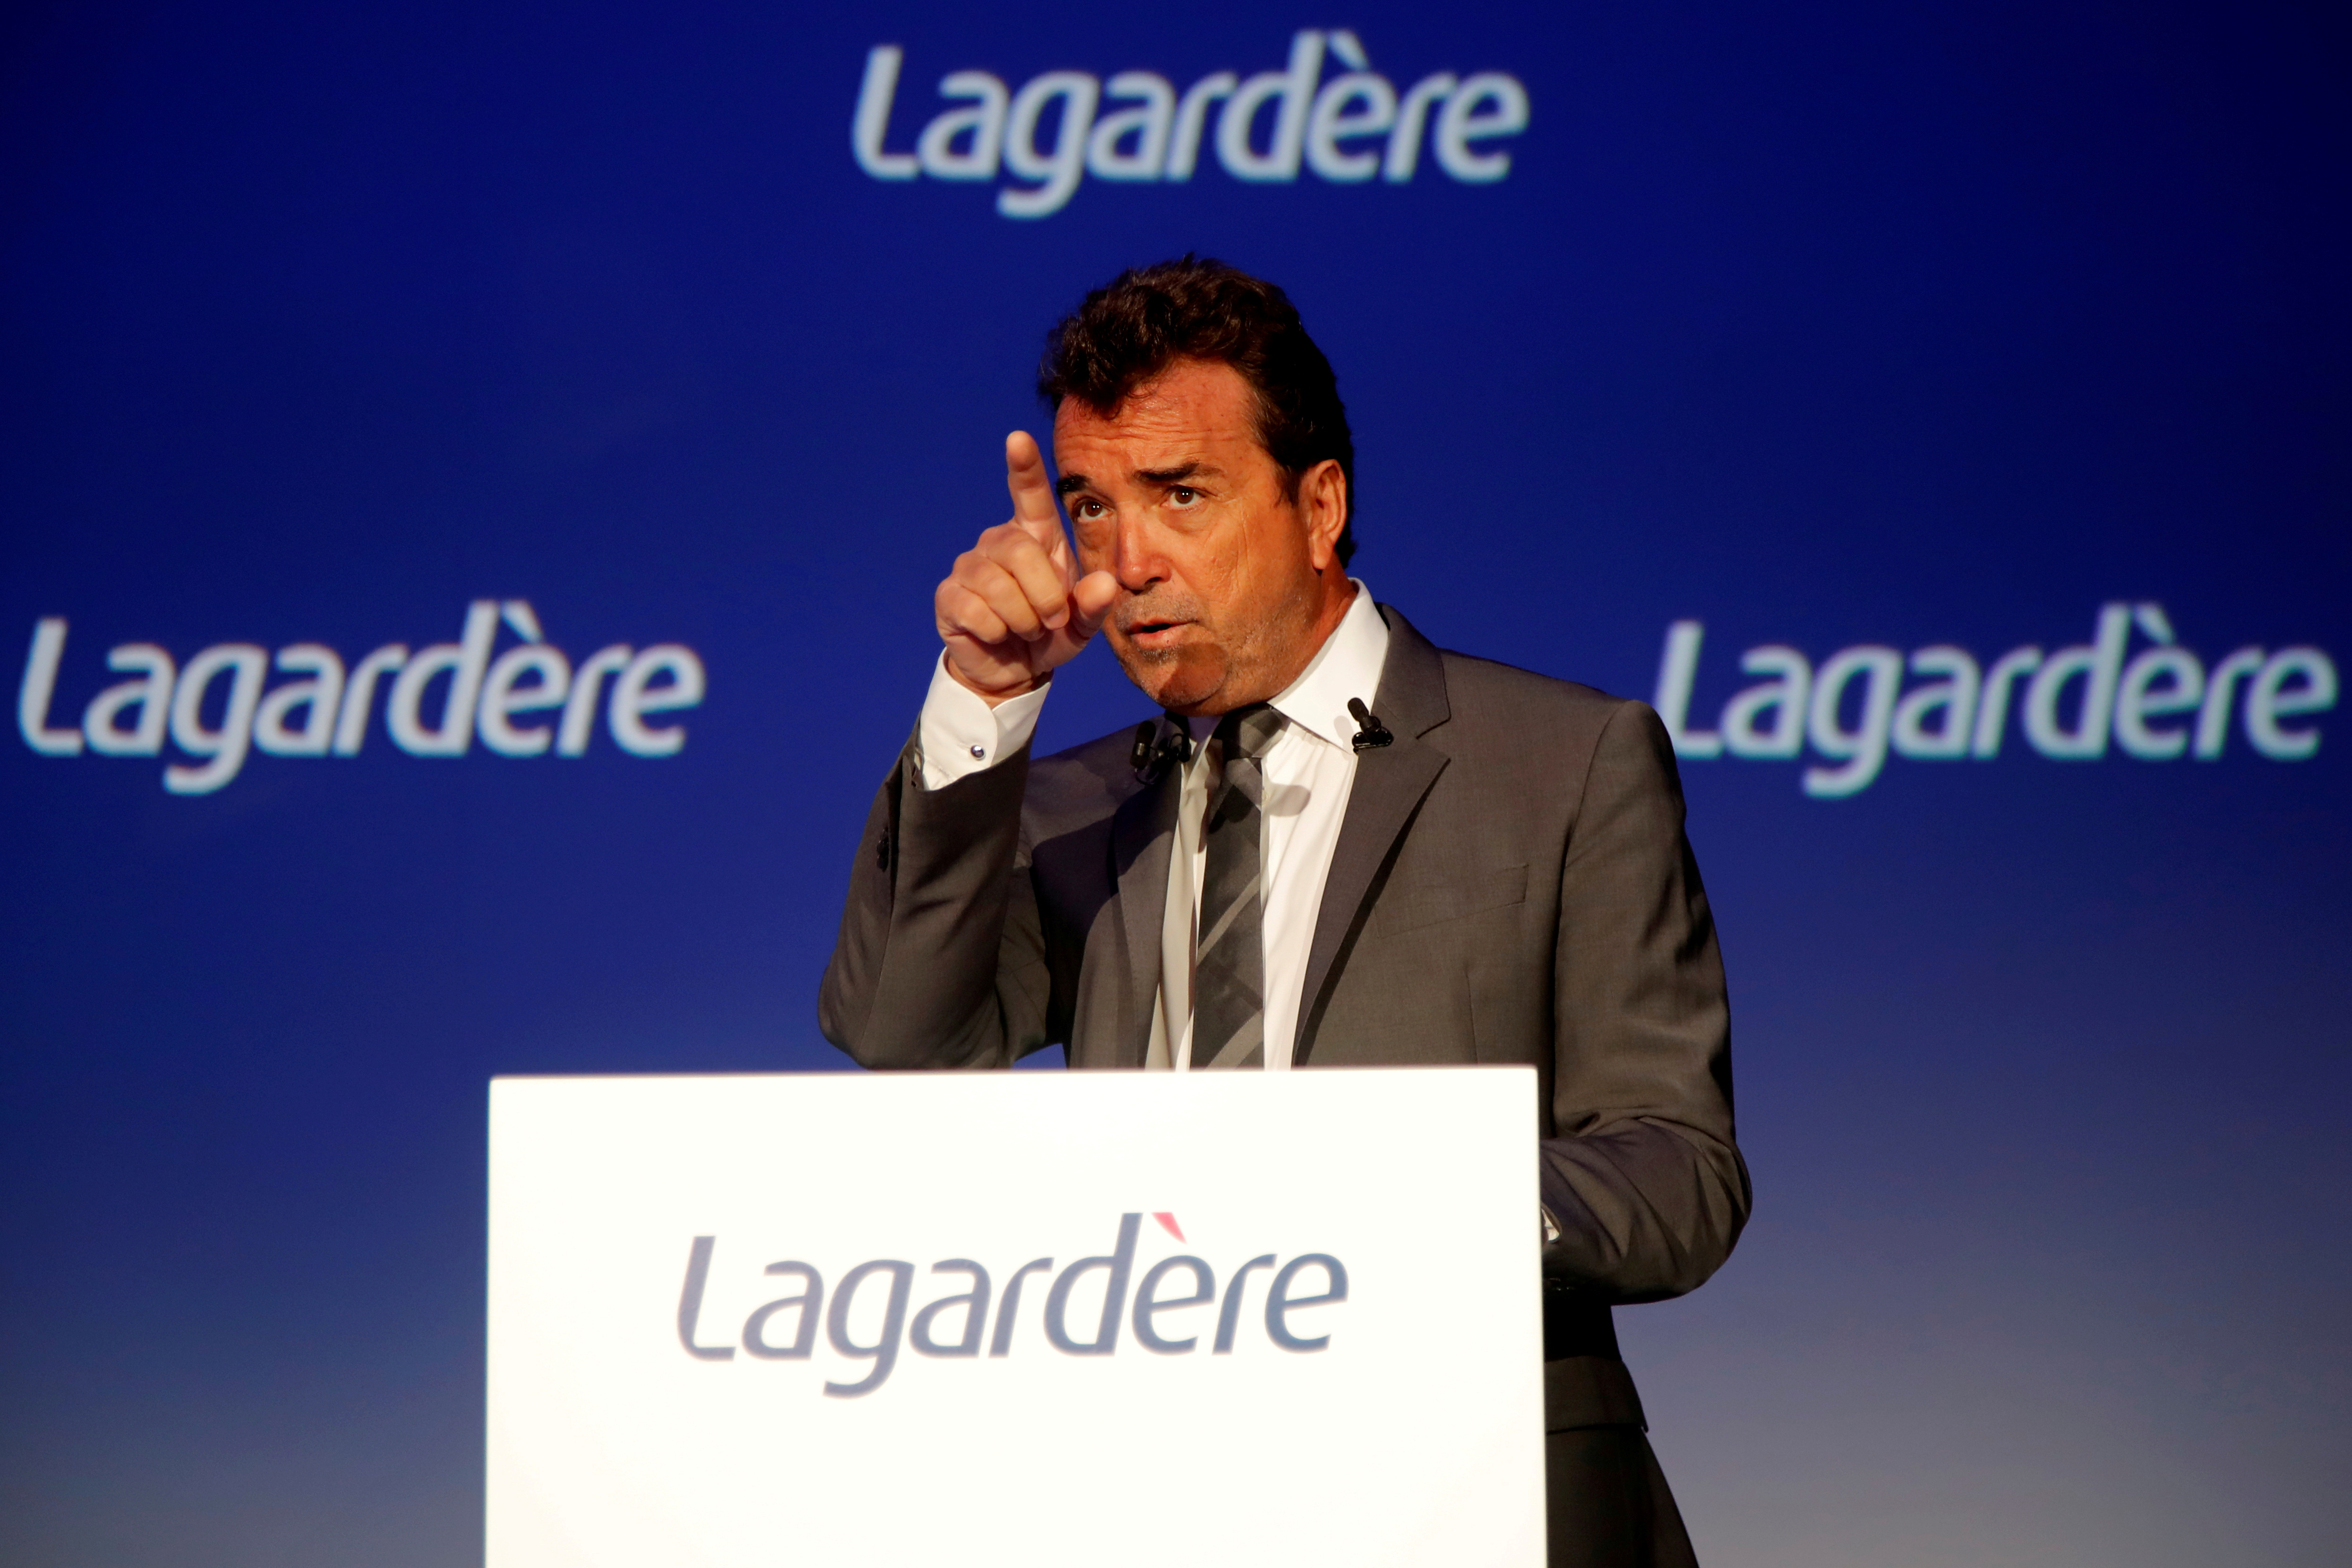 Arnaud Lagardere, the head of French media group Lagardere, attends the group's shareholders meeting in Paris, France, May 3, 2018. REUTERS/Charles Platiau